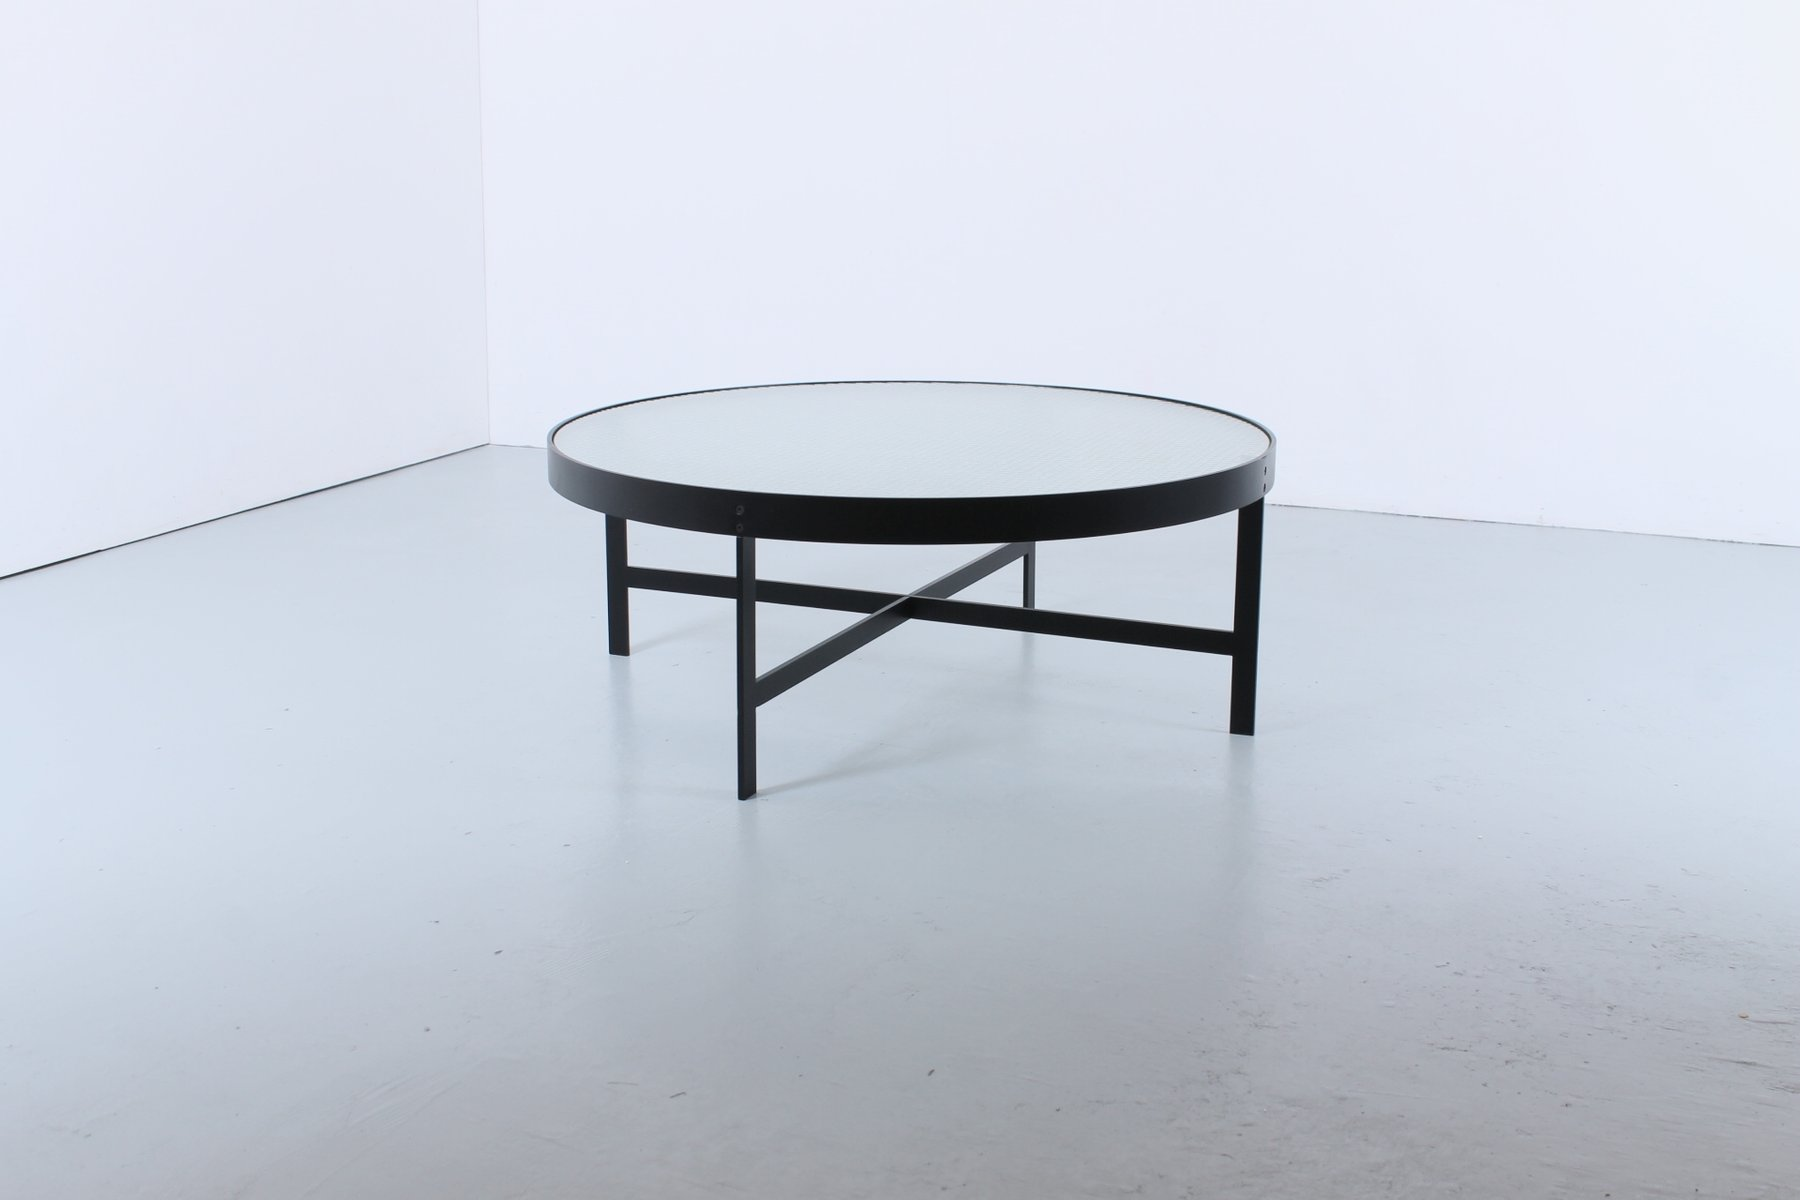 Mid Century Round Black Frosted Wire Glass Coffee Table By Jannie Van Pelt  For My Home